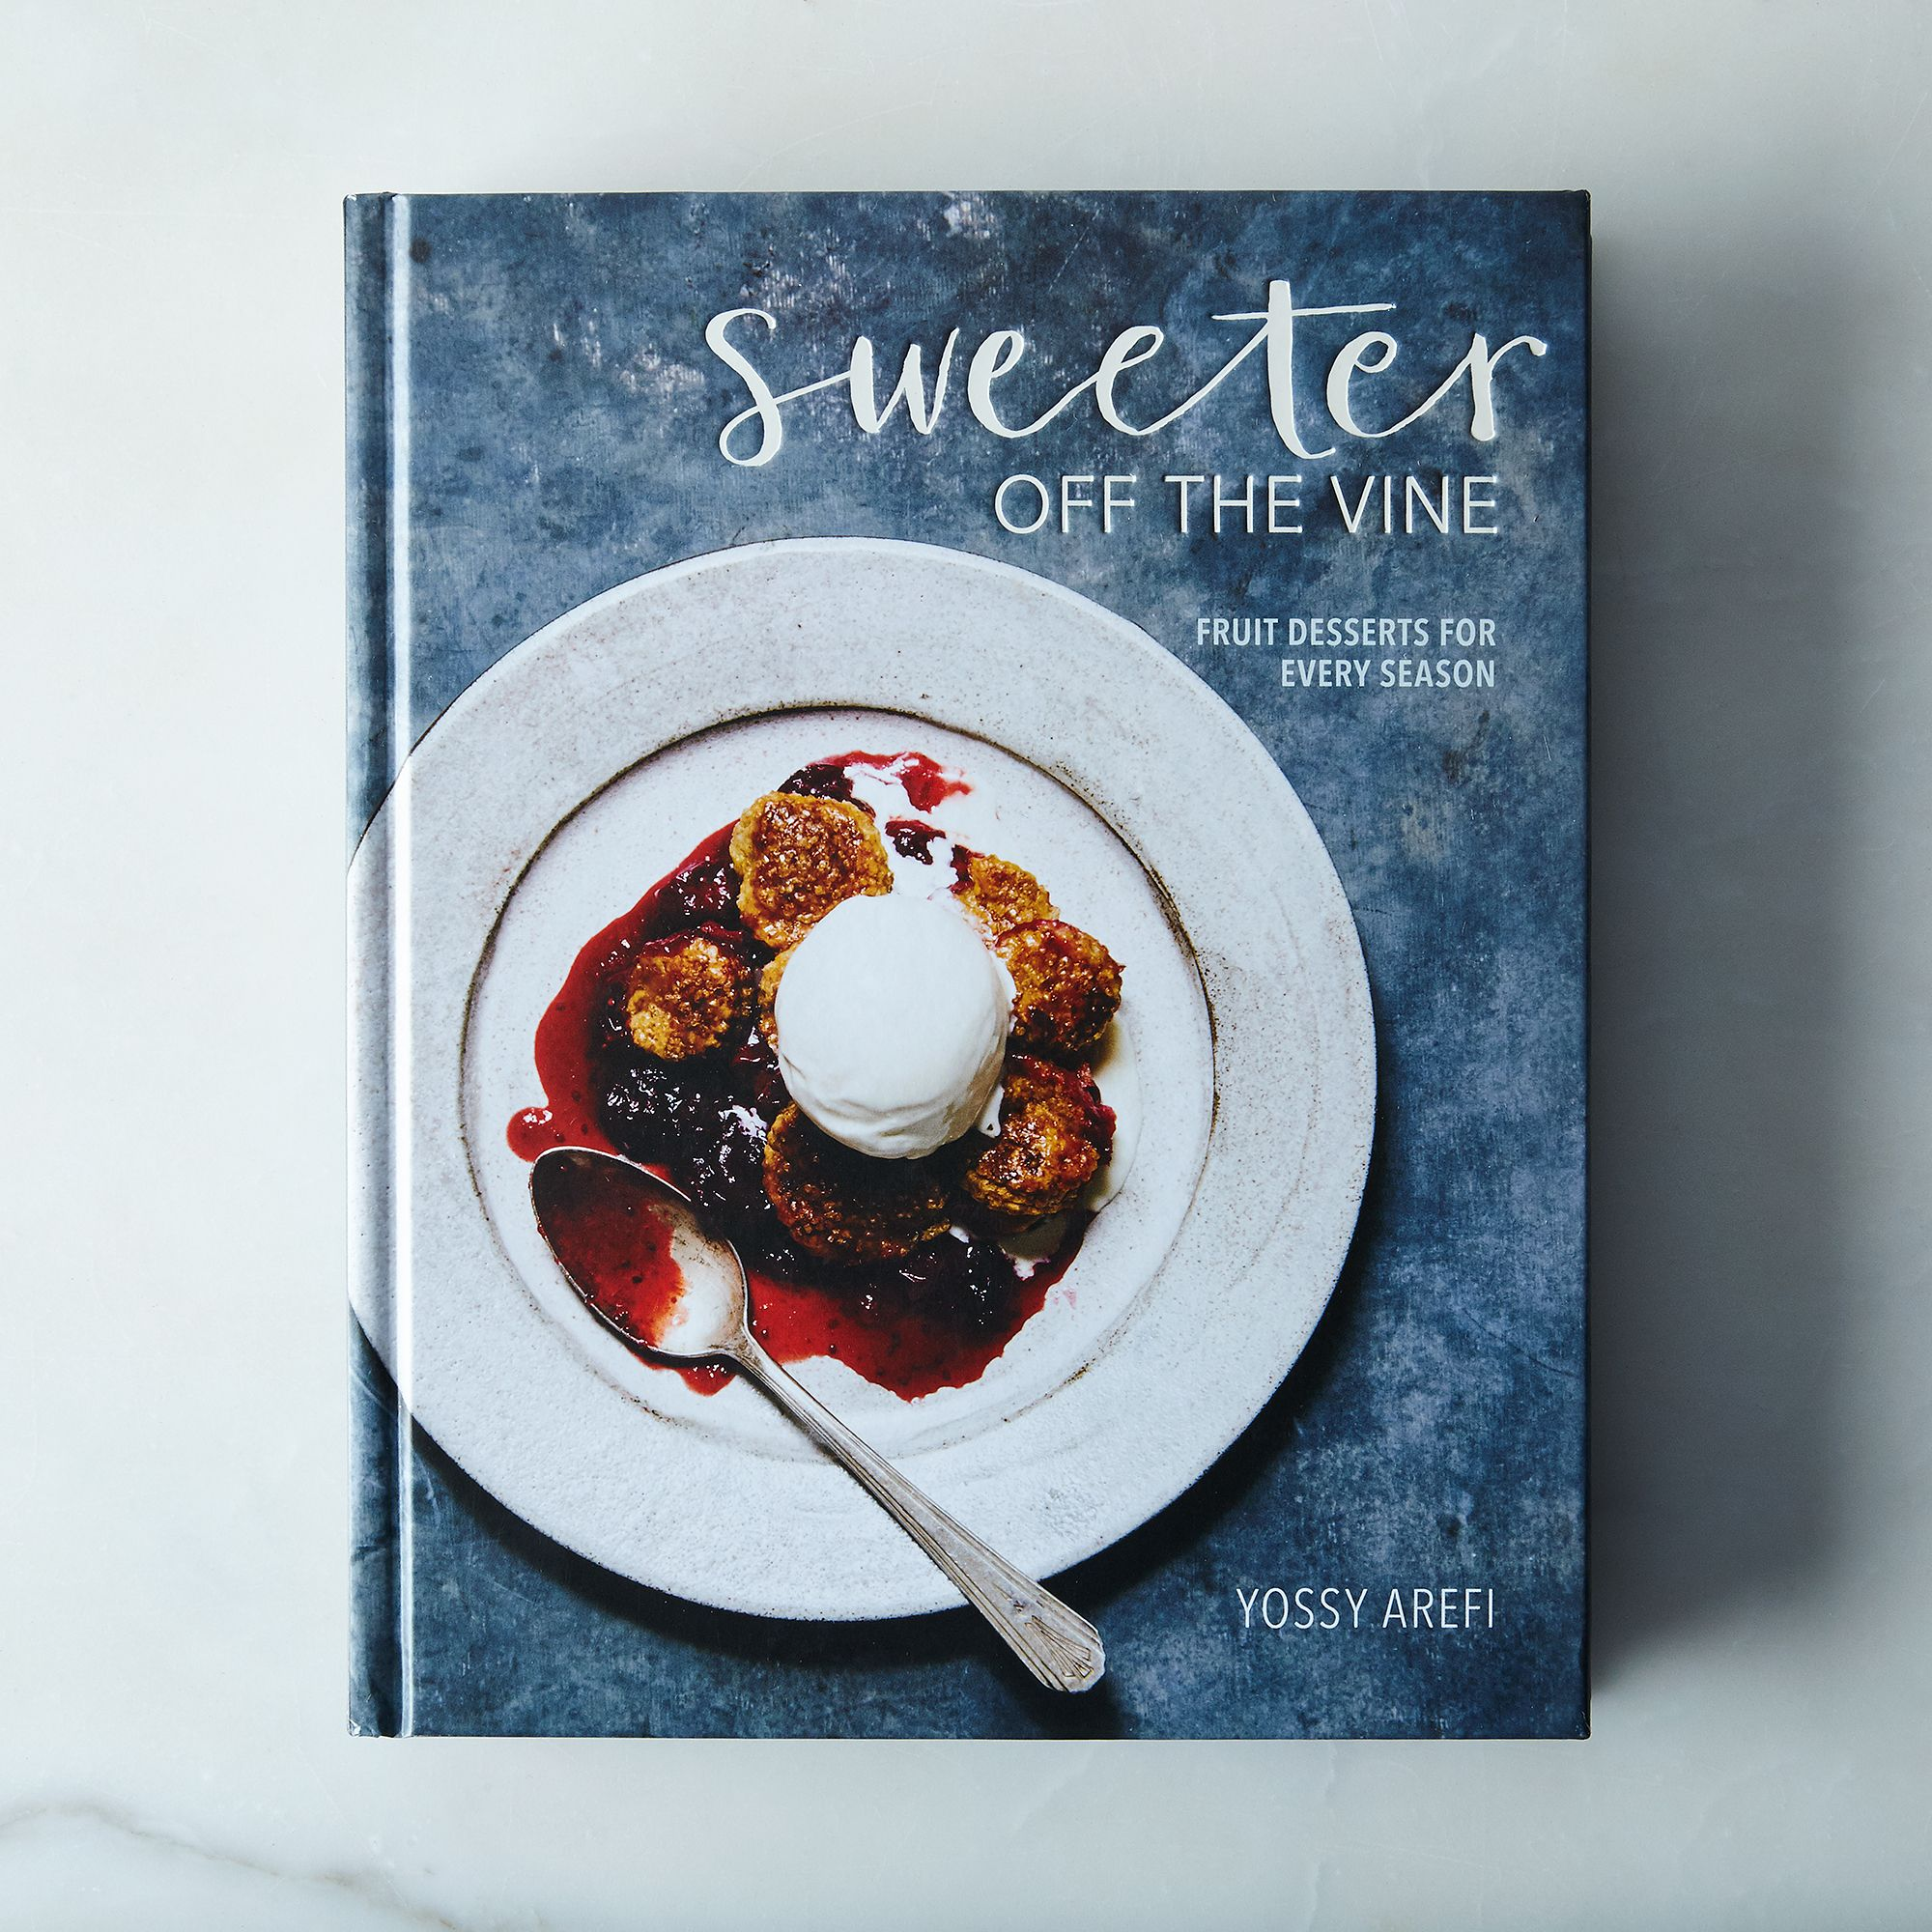 The perfect fall baking cookbook for you based on your spirit cake sweeter off the vine fruit desserts for every season si forumfinder Images